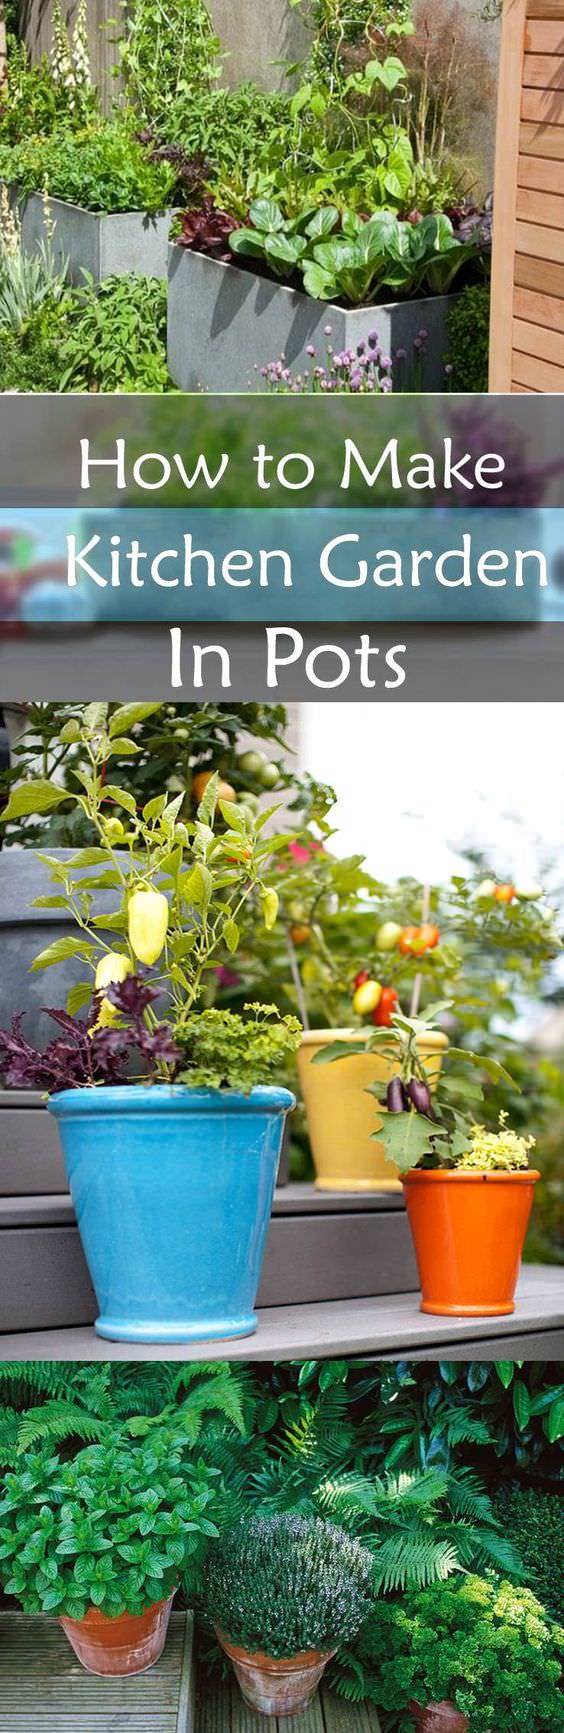 Learn how to make a kitchen garden in pots. See tips on growing fresh and organic vegetables and herbs in your container kitchen garden.